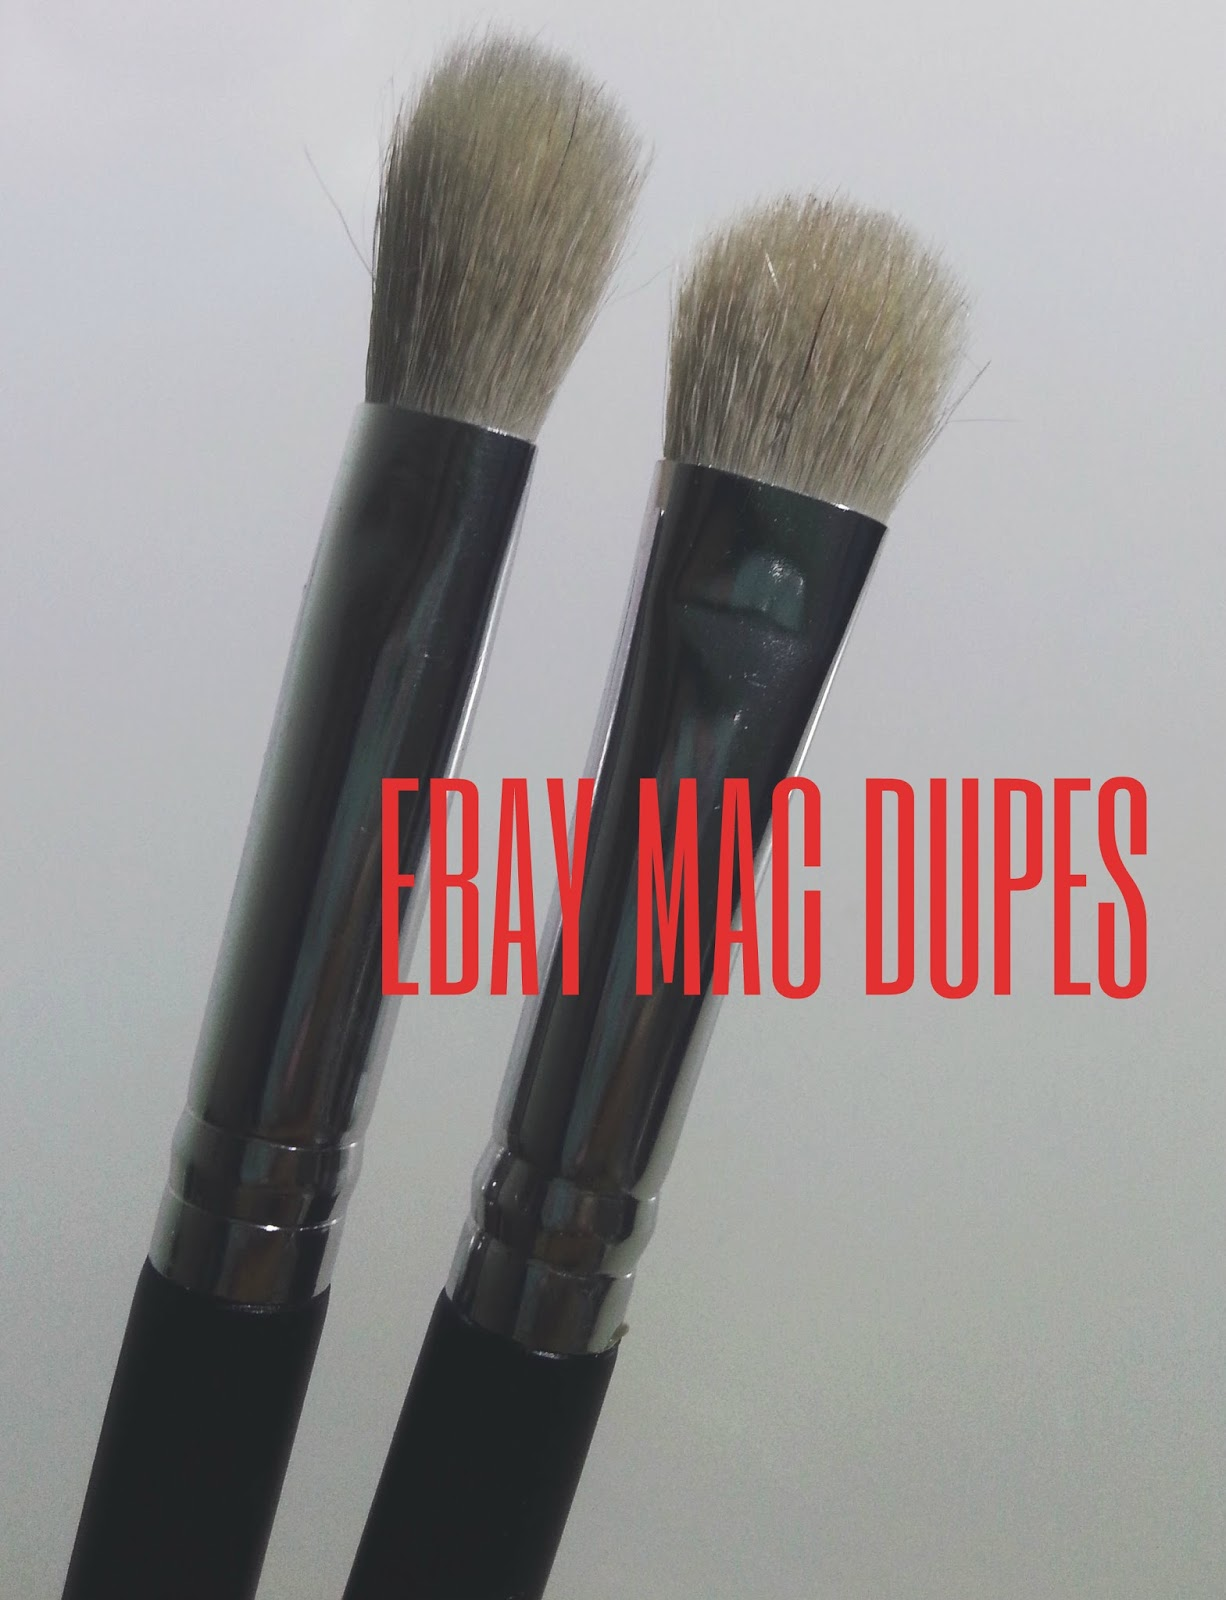 MAC EBAY Brushes Dupe